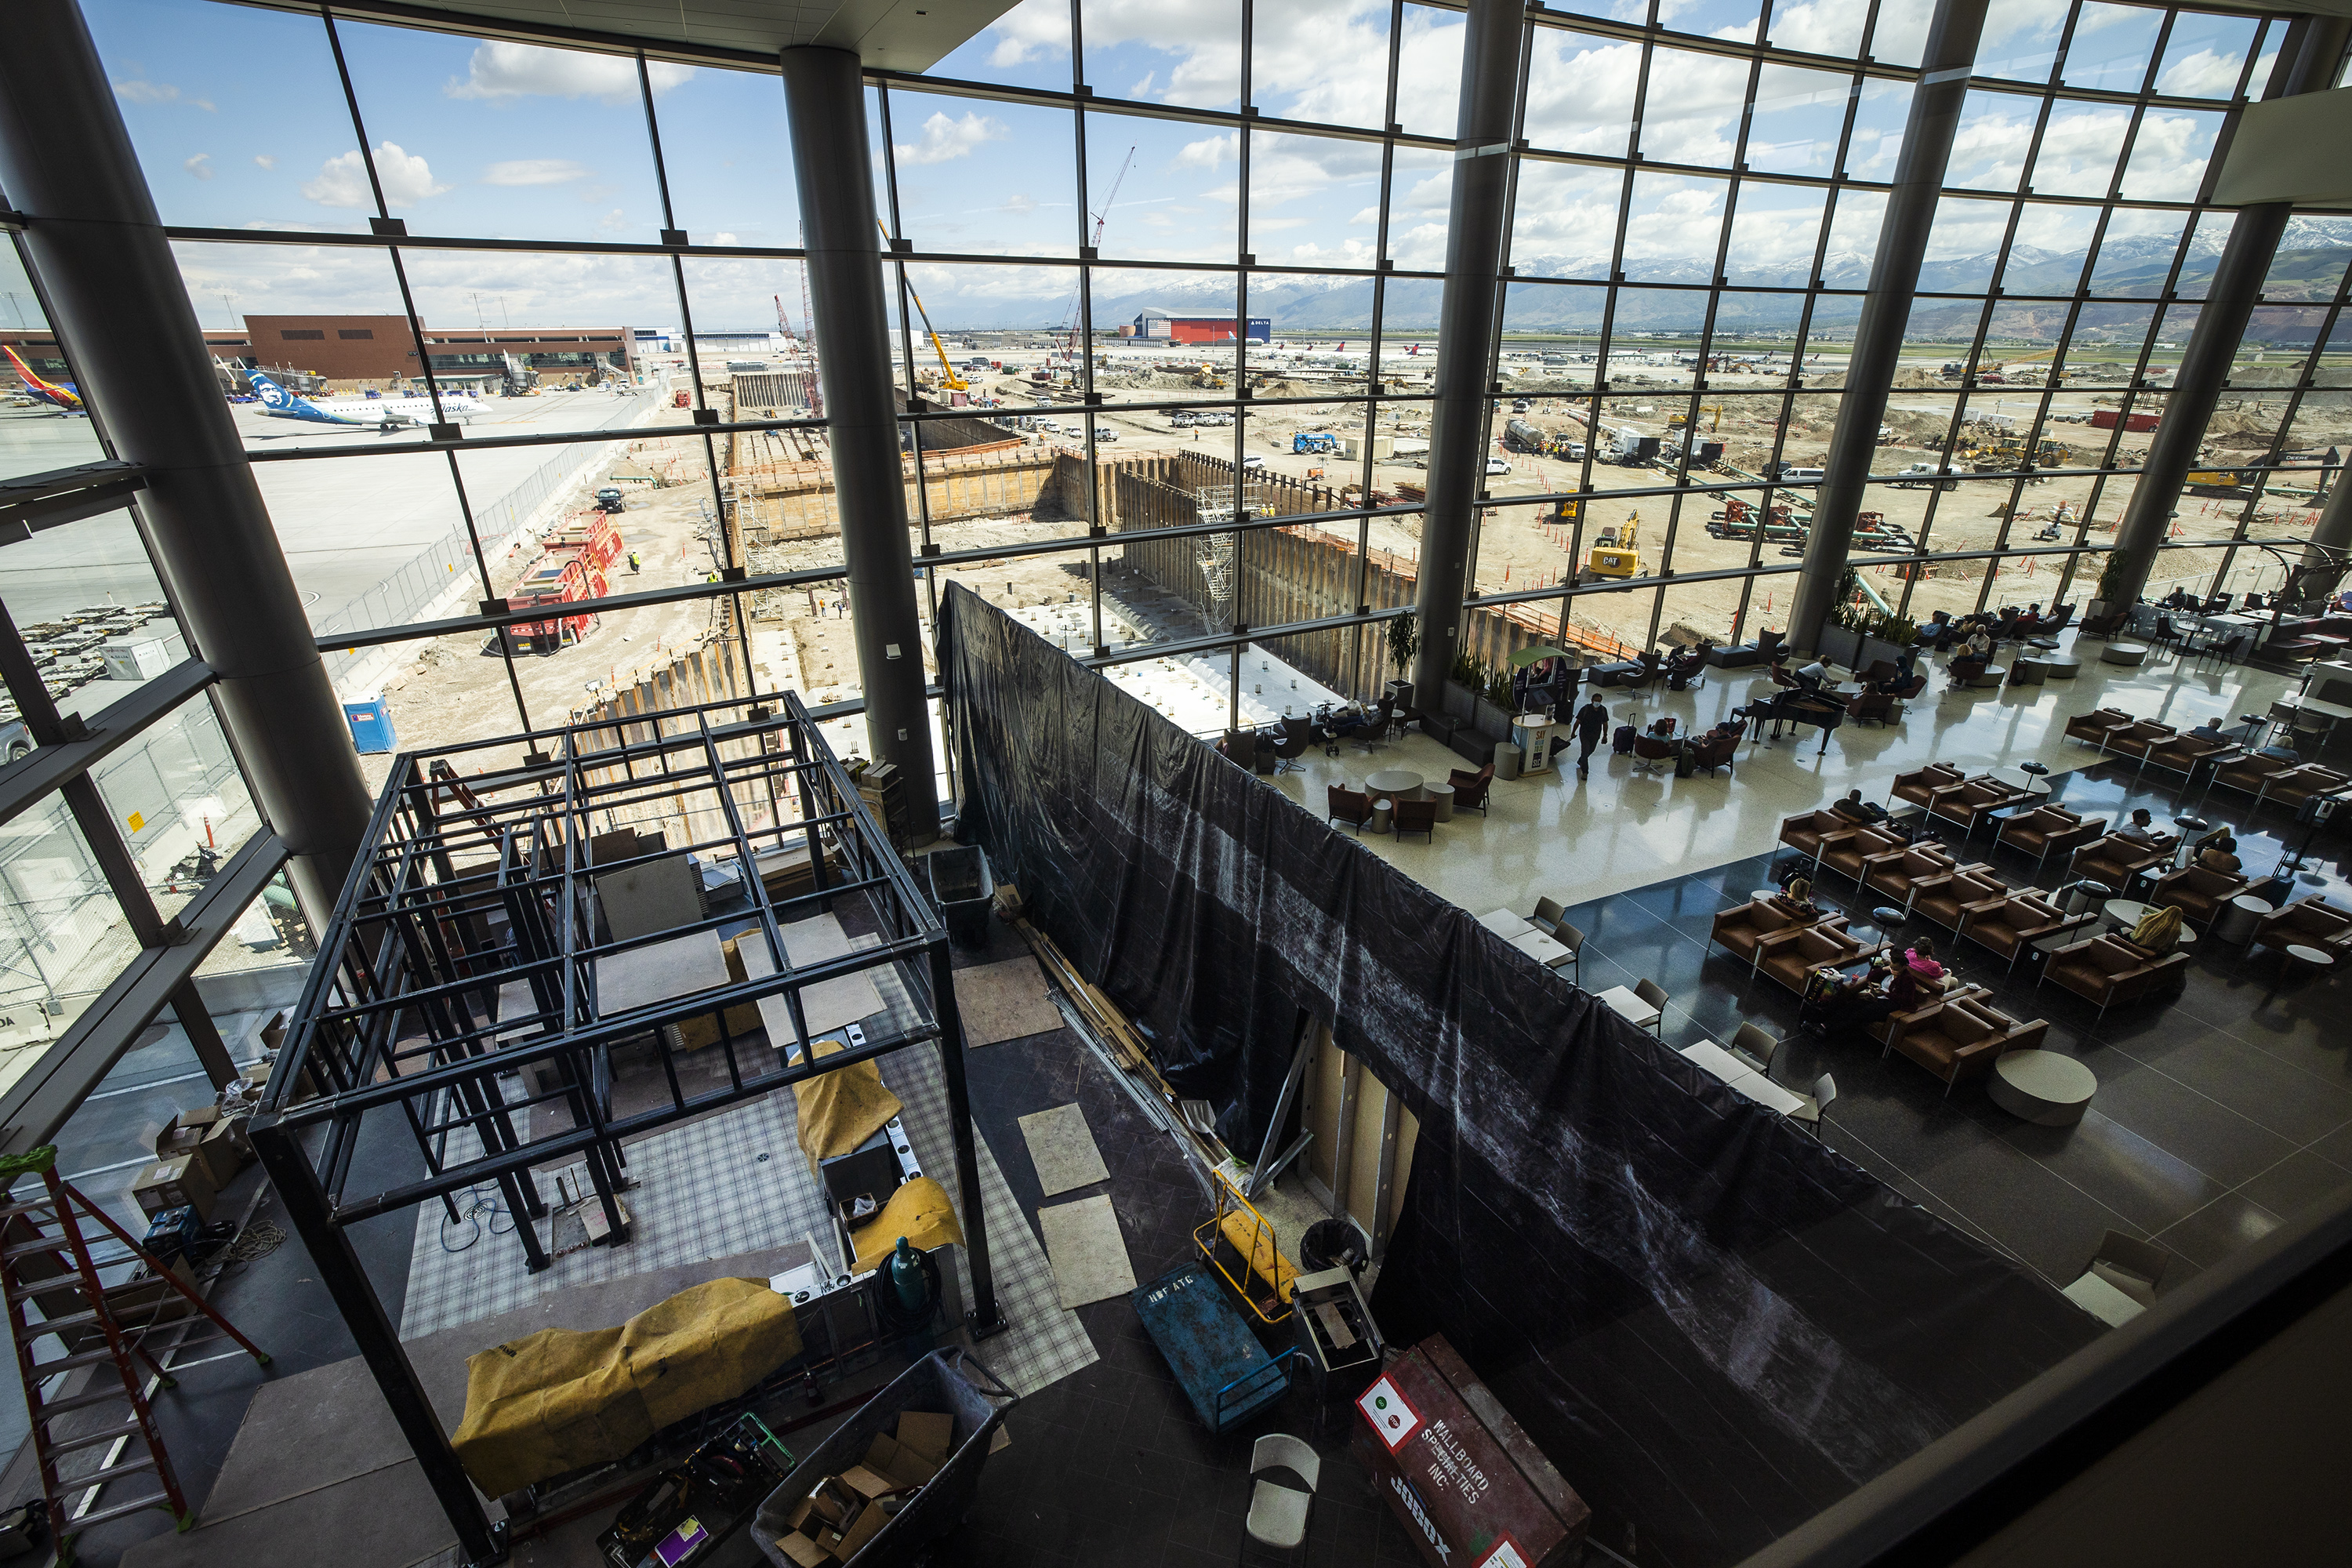 The generational, $4.1 billion new Salt Lake City International Airport opened in September 2020. But construction is far from done.